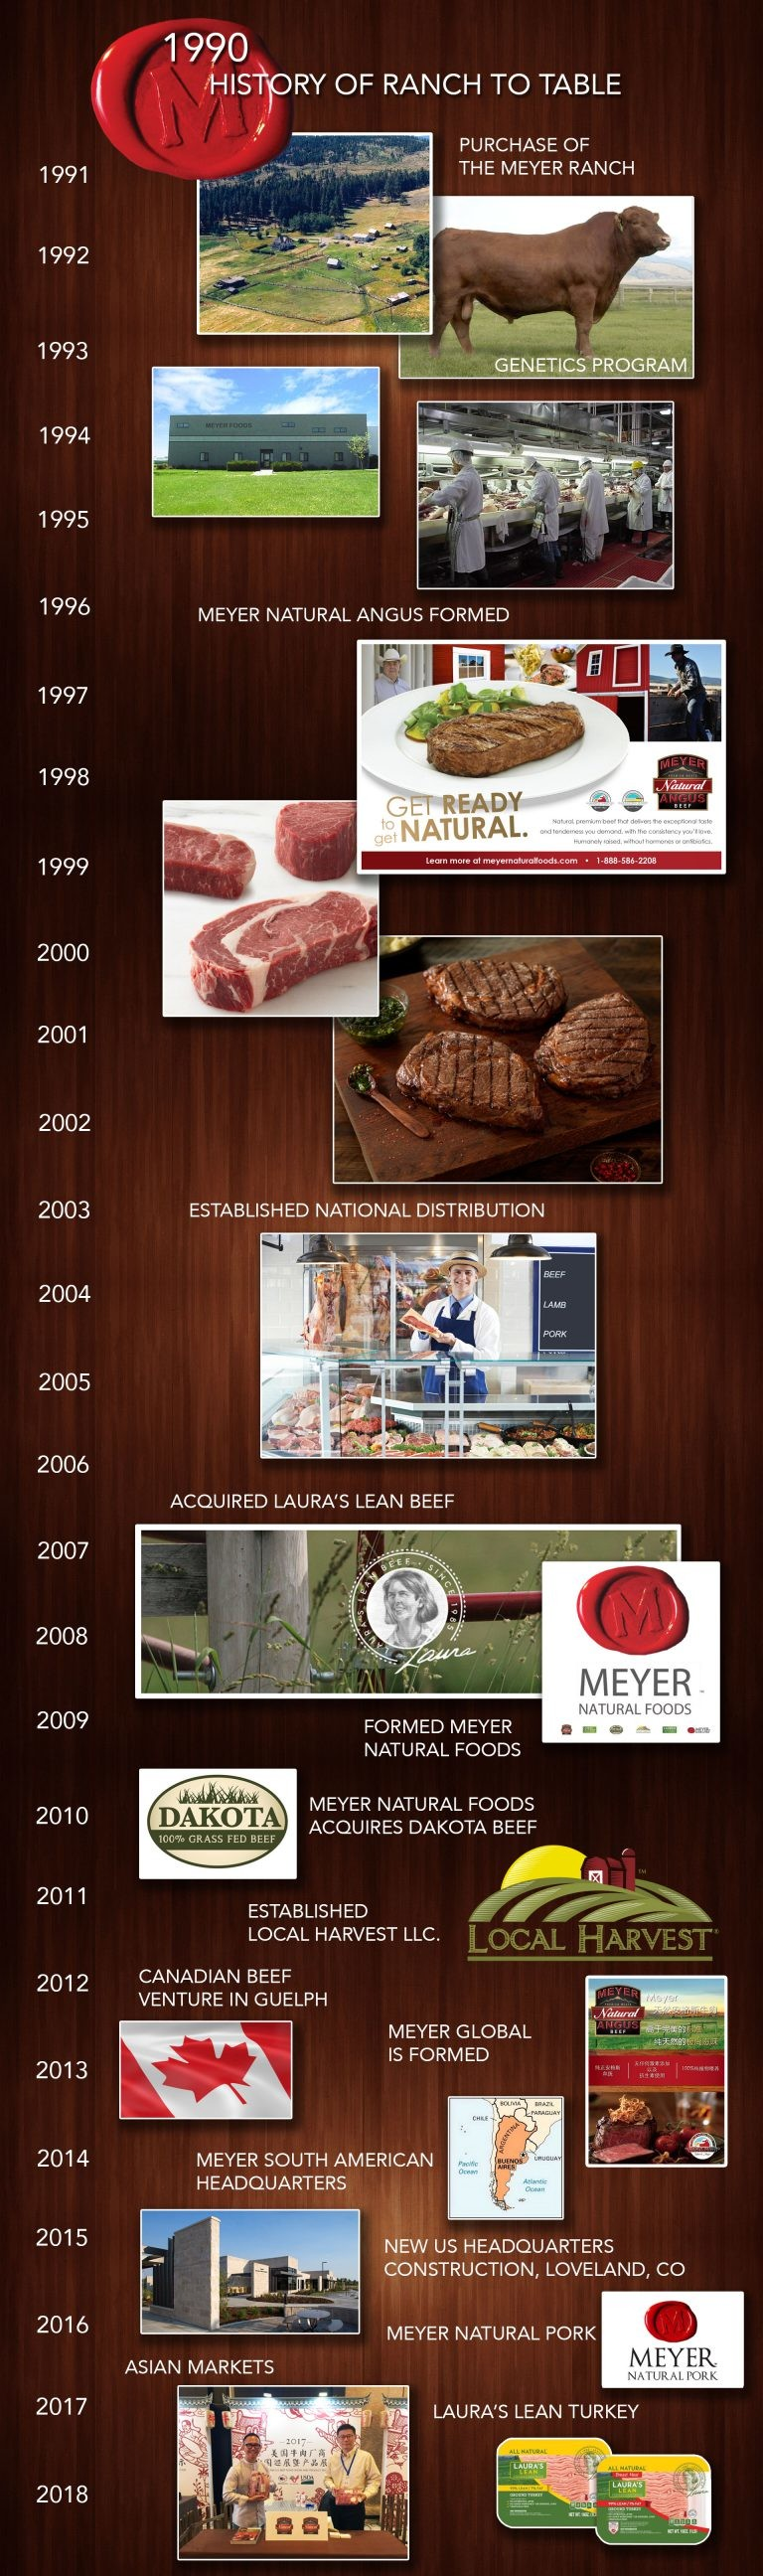 Meyer Natural Foods Timeline from 1990 to present